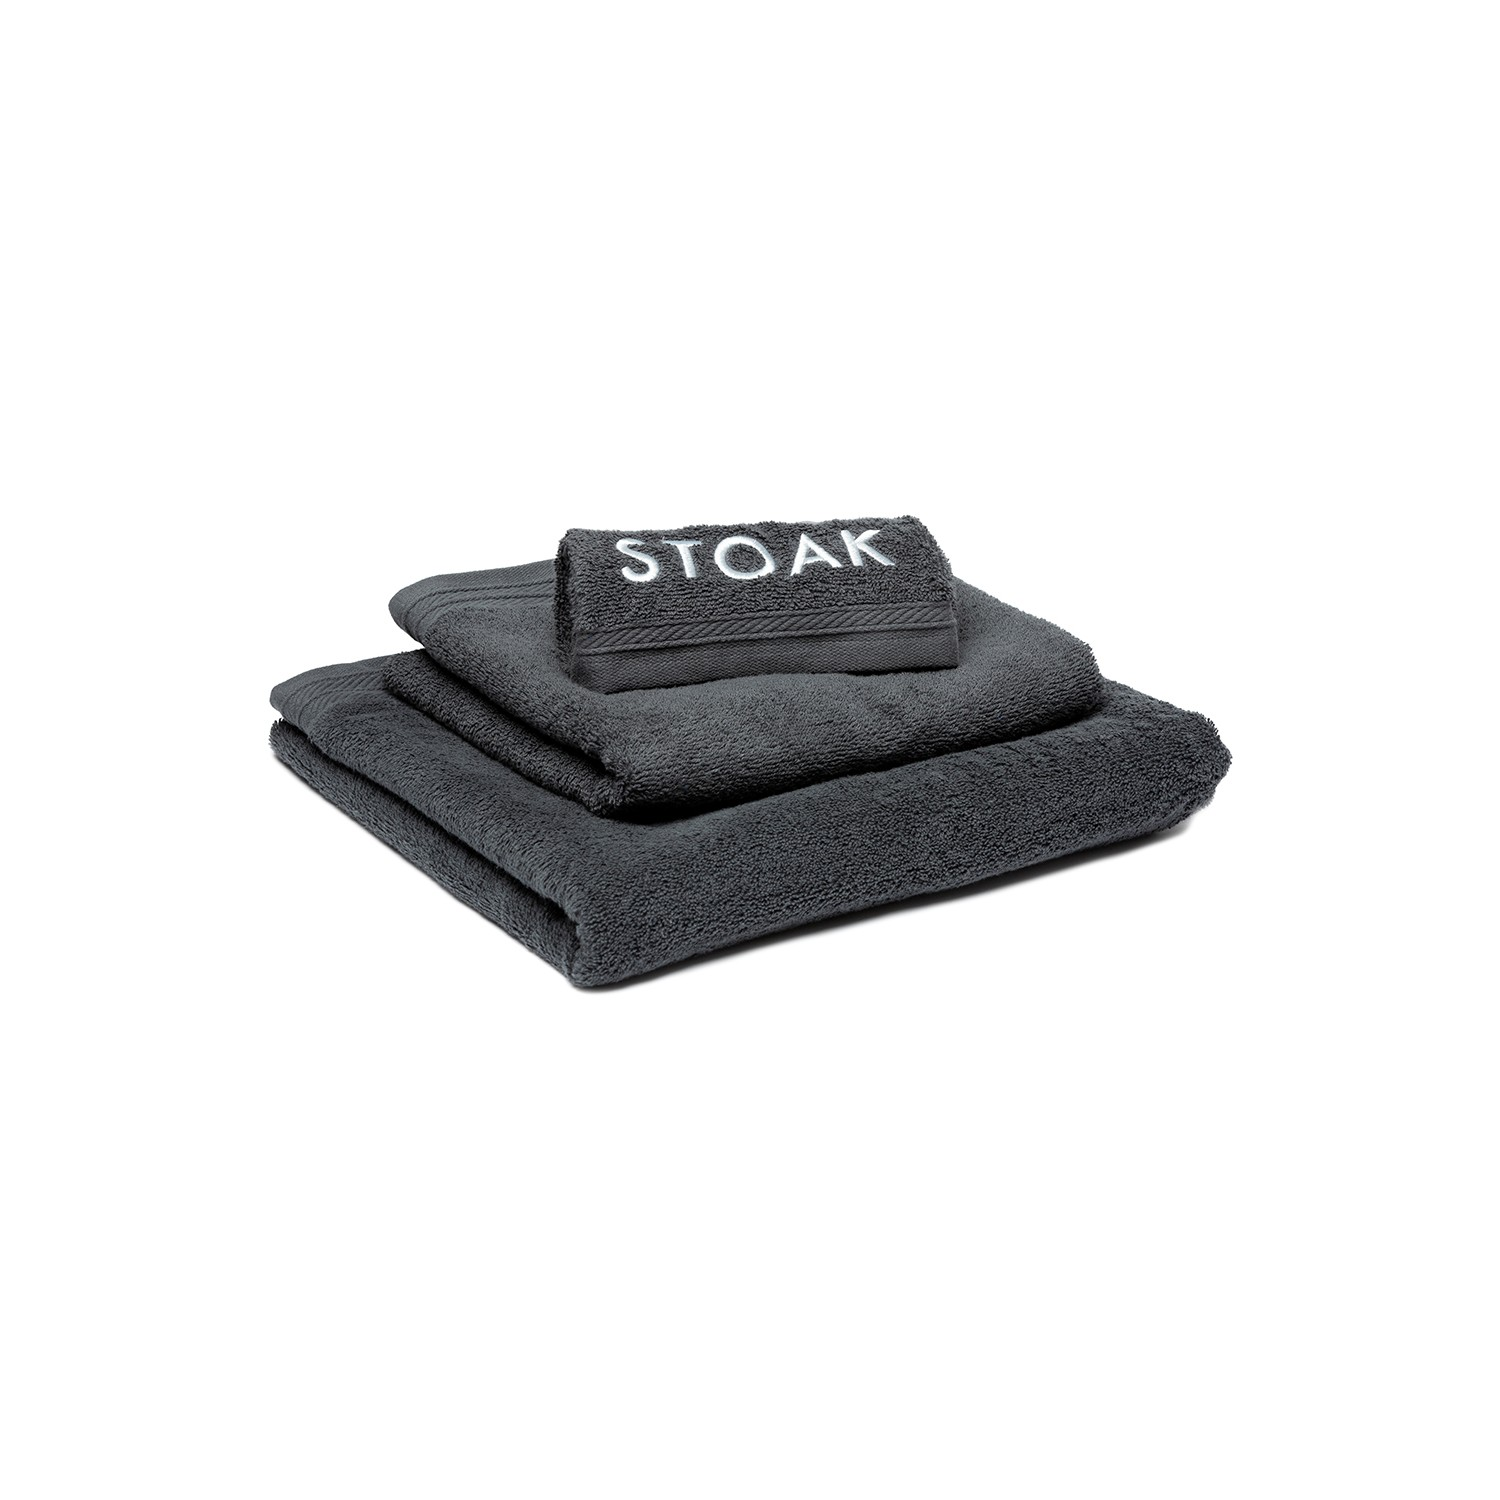 STOAK ASH TOWEL (Organic Cotton)